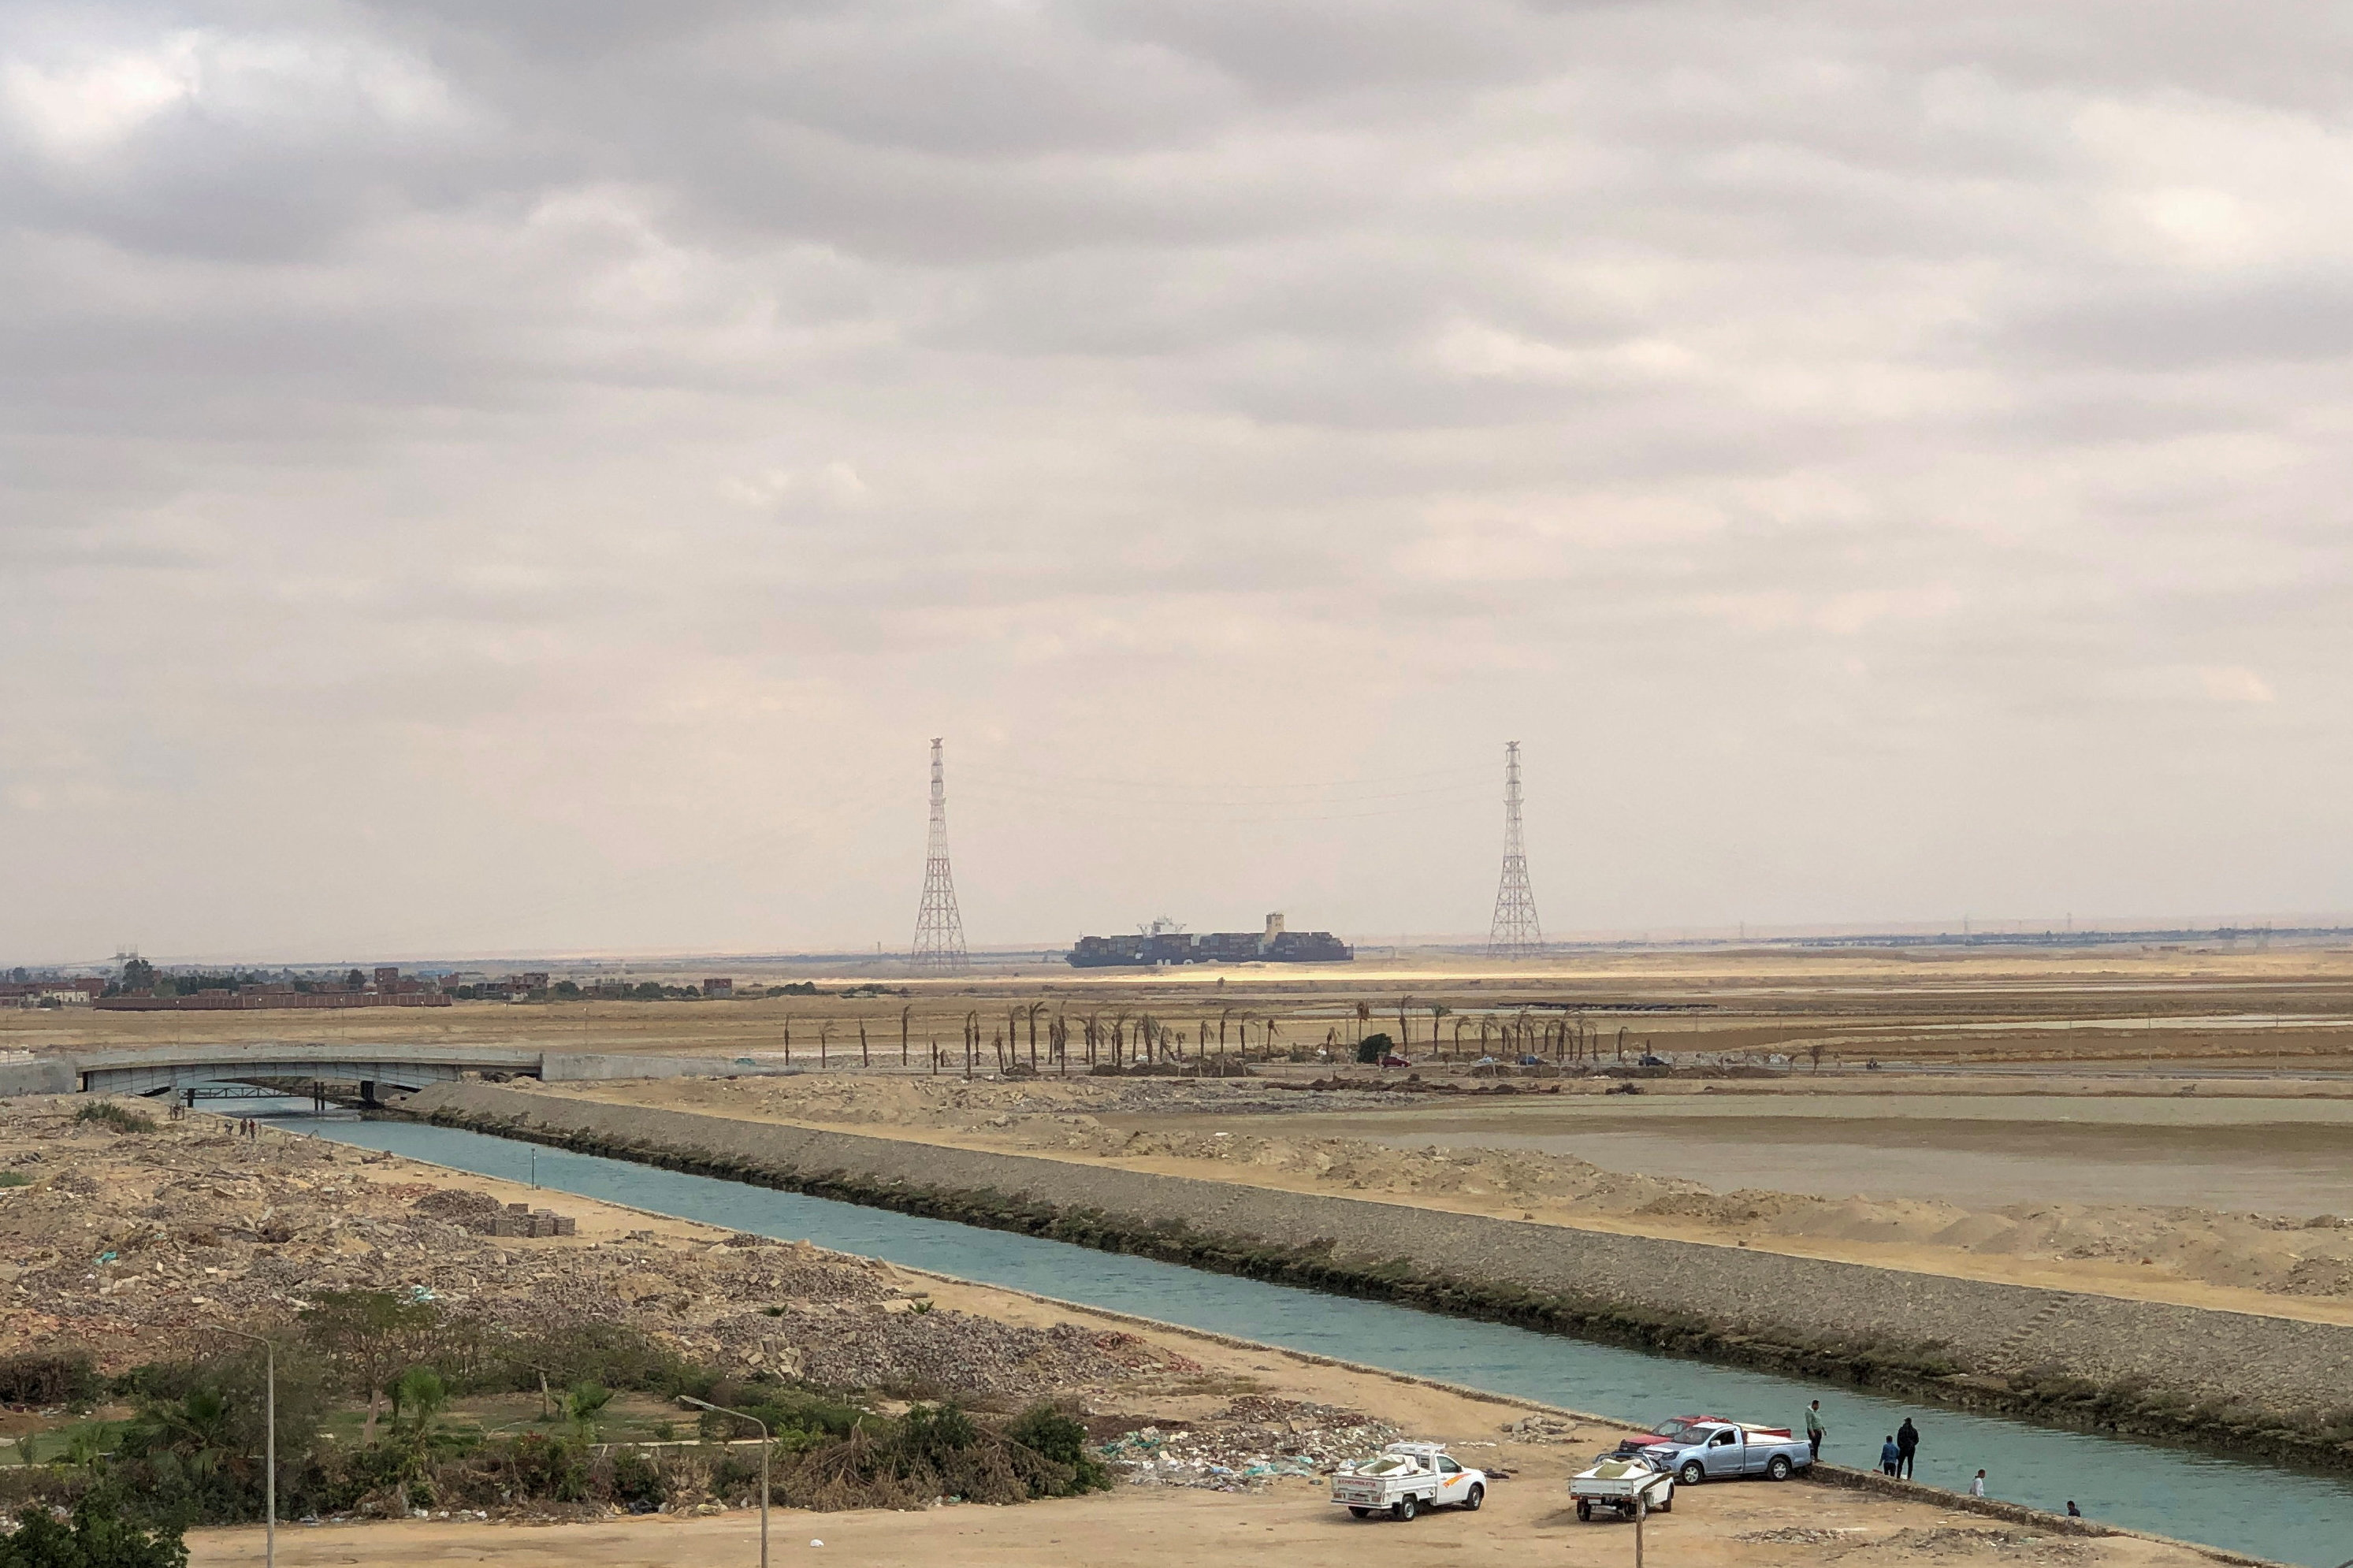 A ship sails through Suez Canal as traffic resumes after a container ship that blocked the waterway was refloated, Egypt, March 30, 2021. REUTERS/Ahmed Fahmy